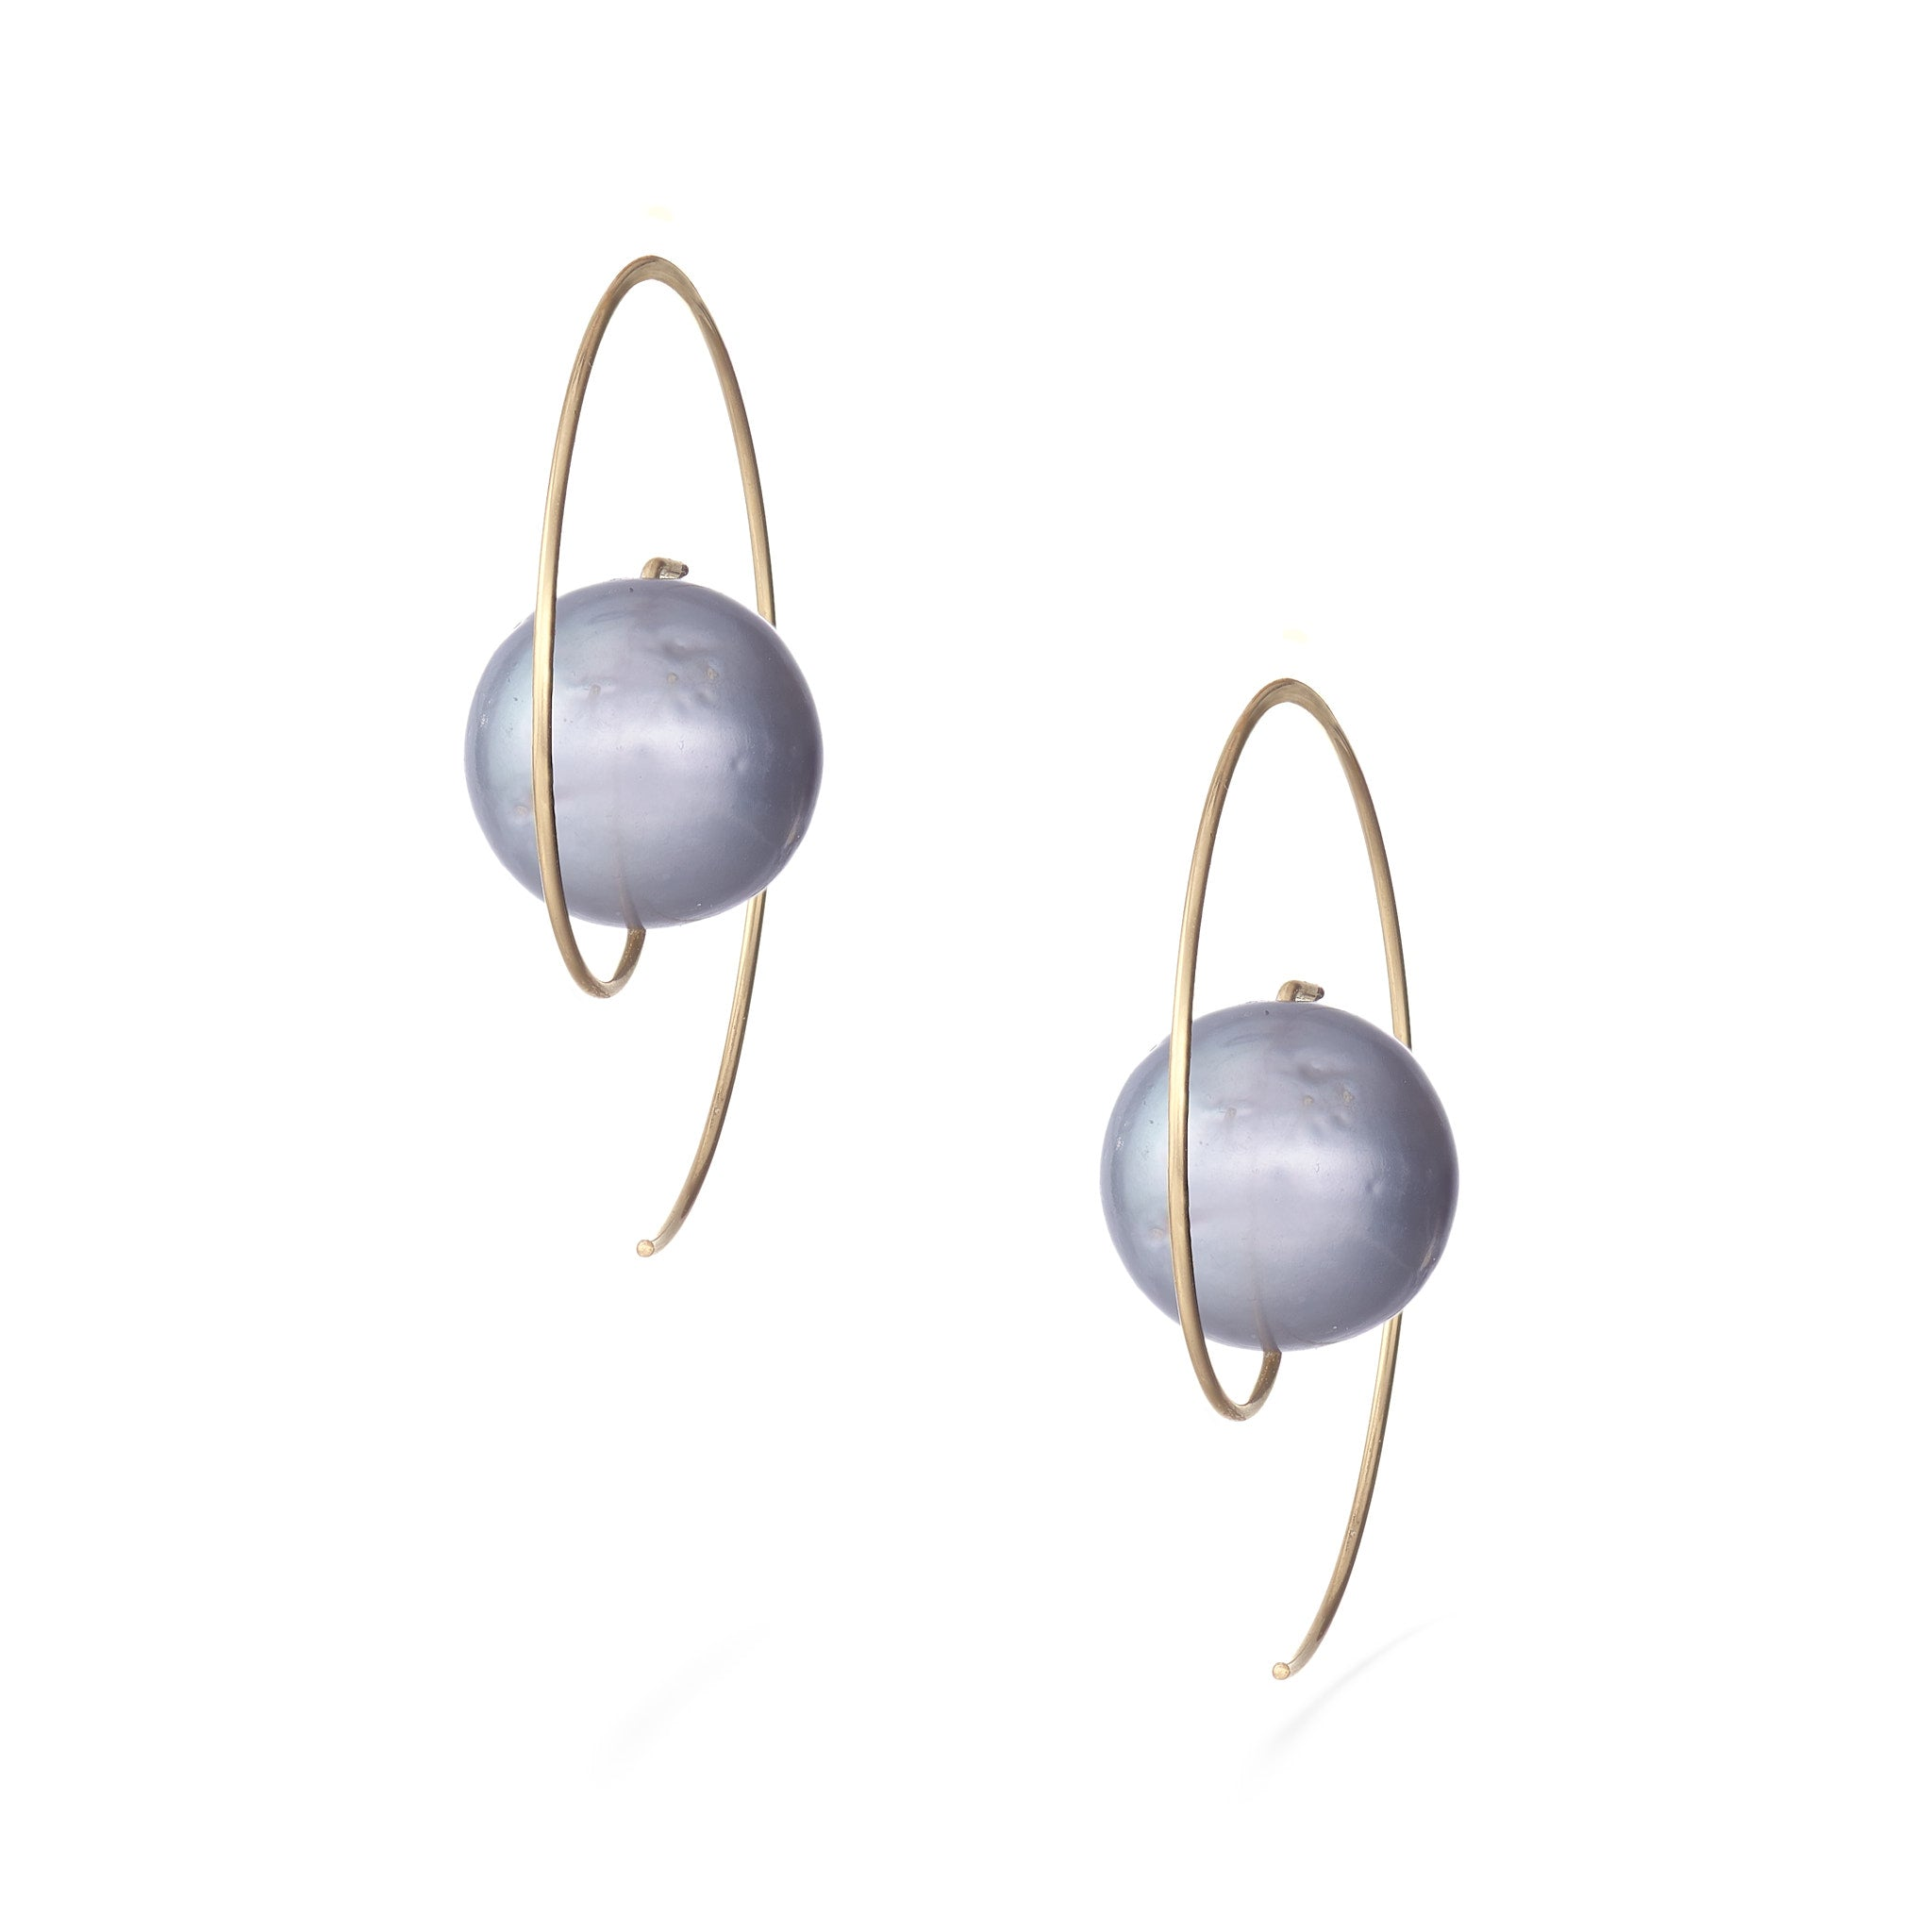 Nova Earrings - Grey